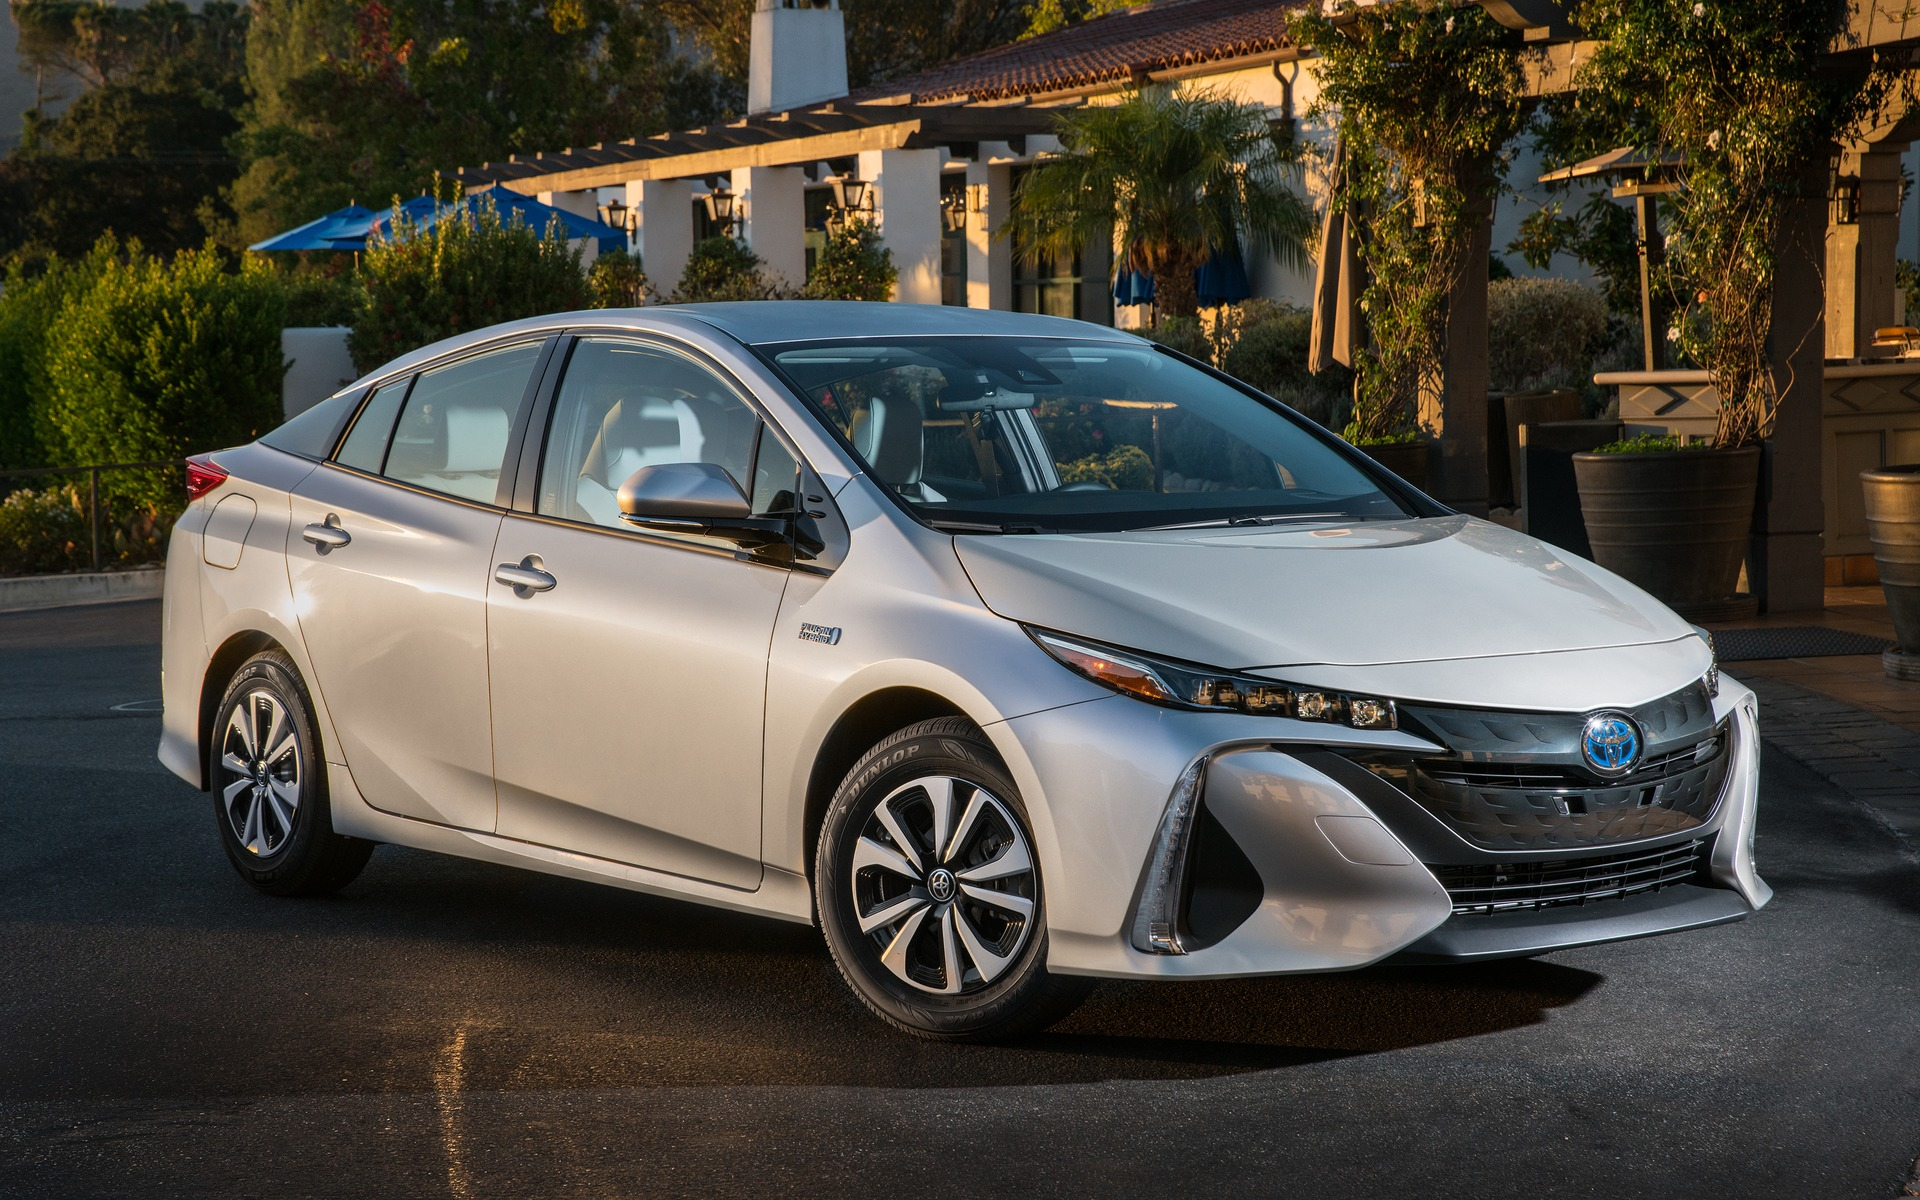 Used Toyota Prius >> 2017 Toyota Prius photos - 5/16 - The Car Guide